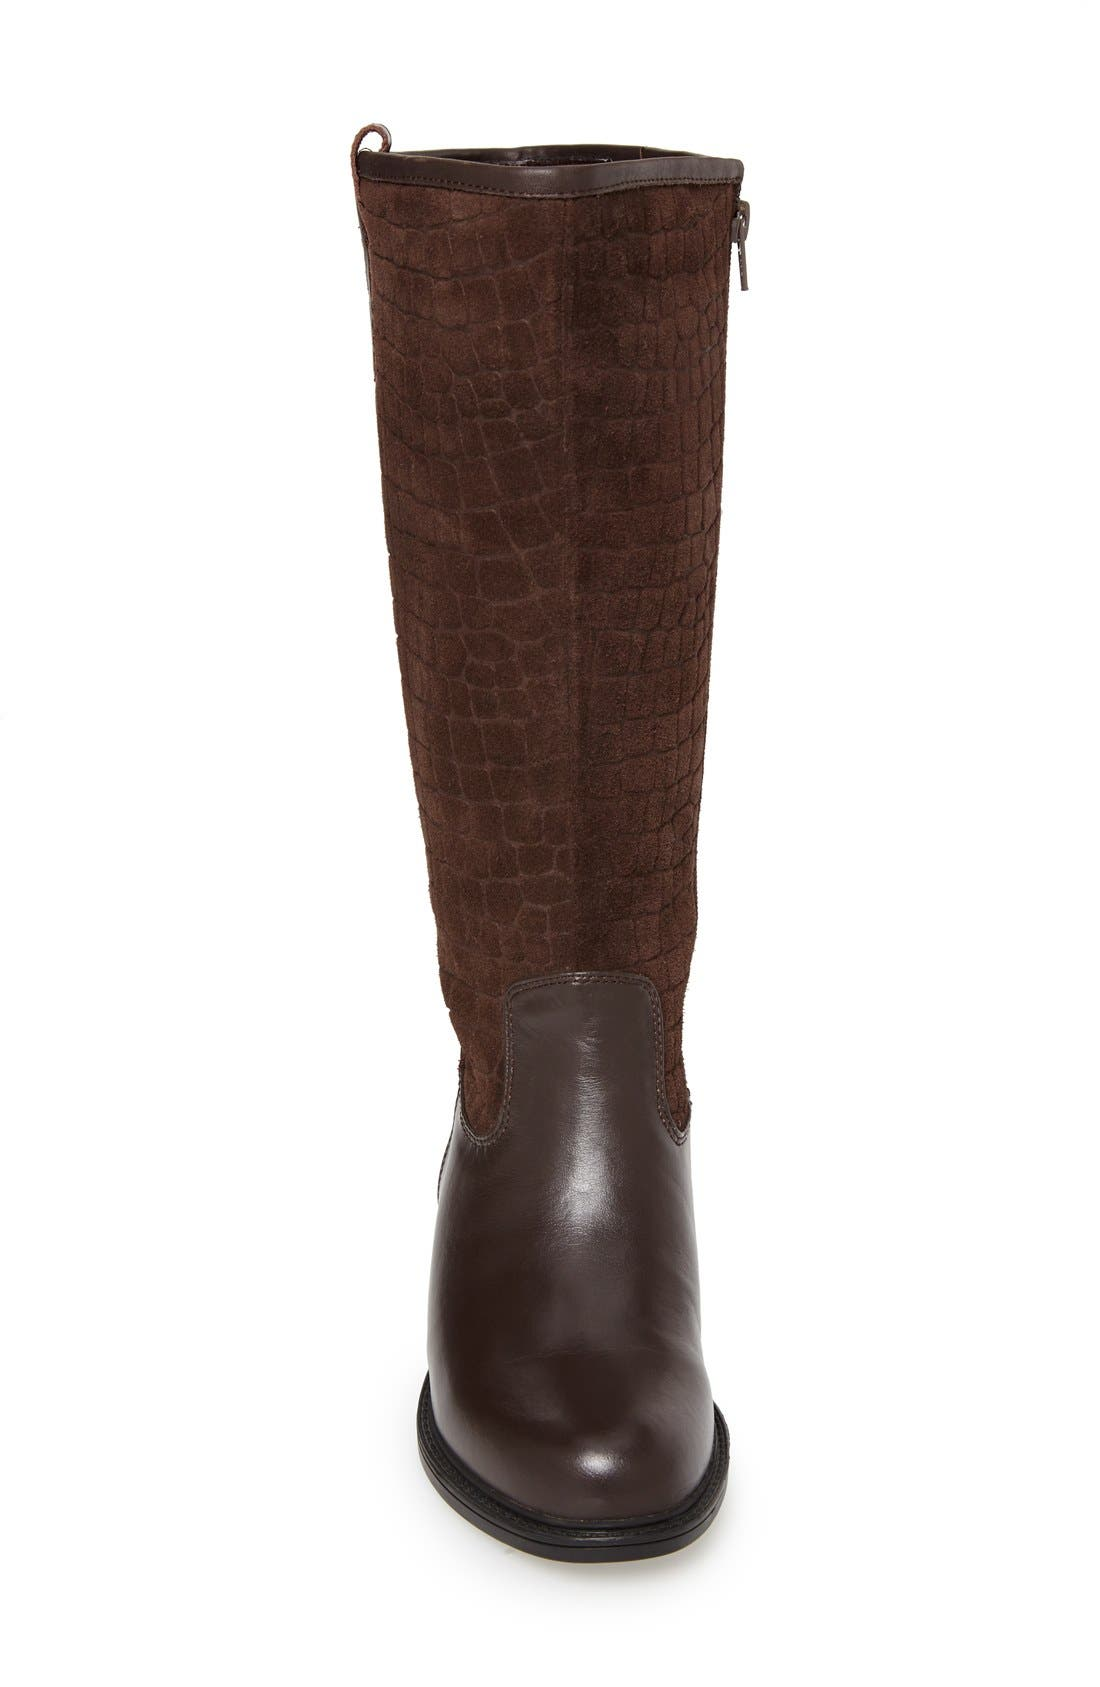 Alternate Image 3  - David Tate 'Best' Calfskin Leather & Suede Boot (Extra Wide Calf)